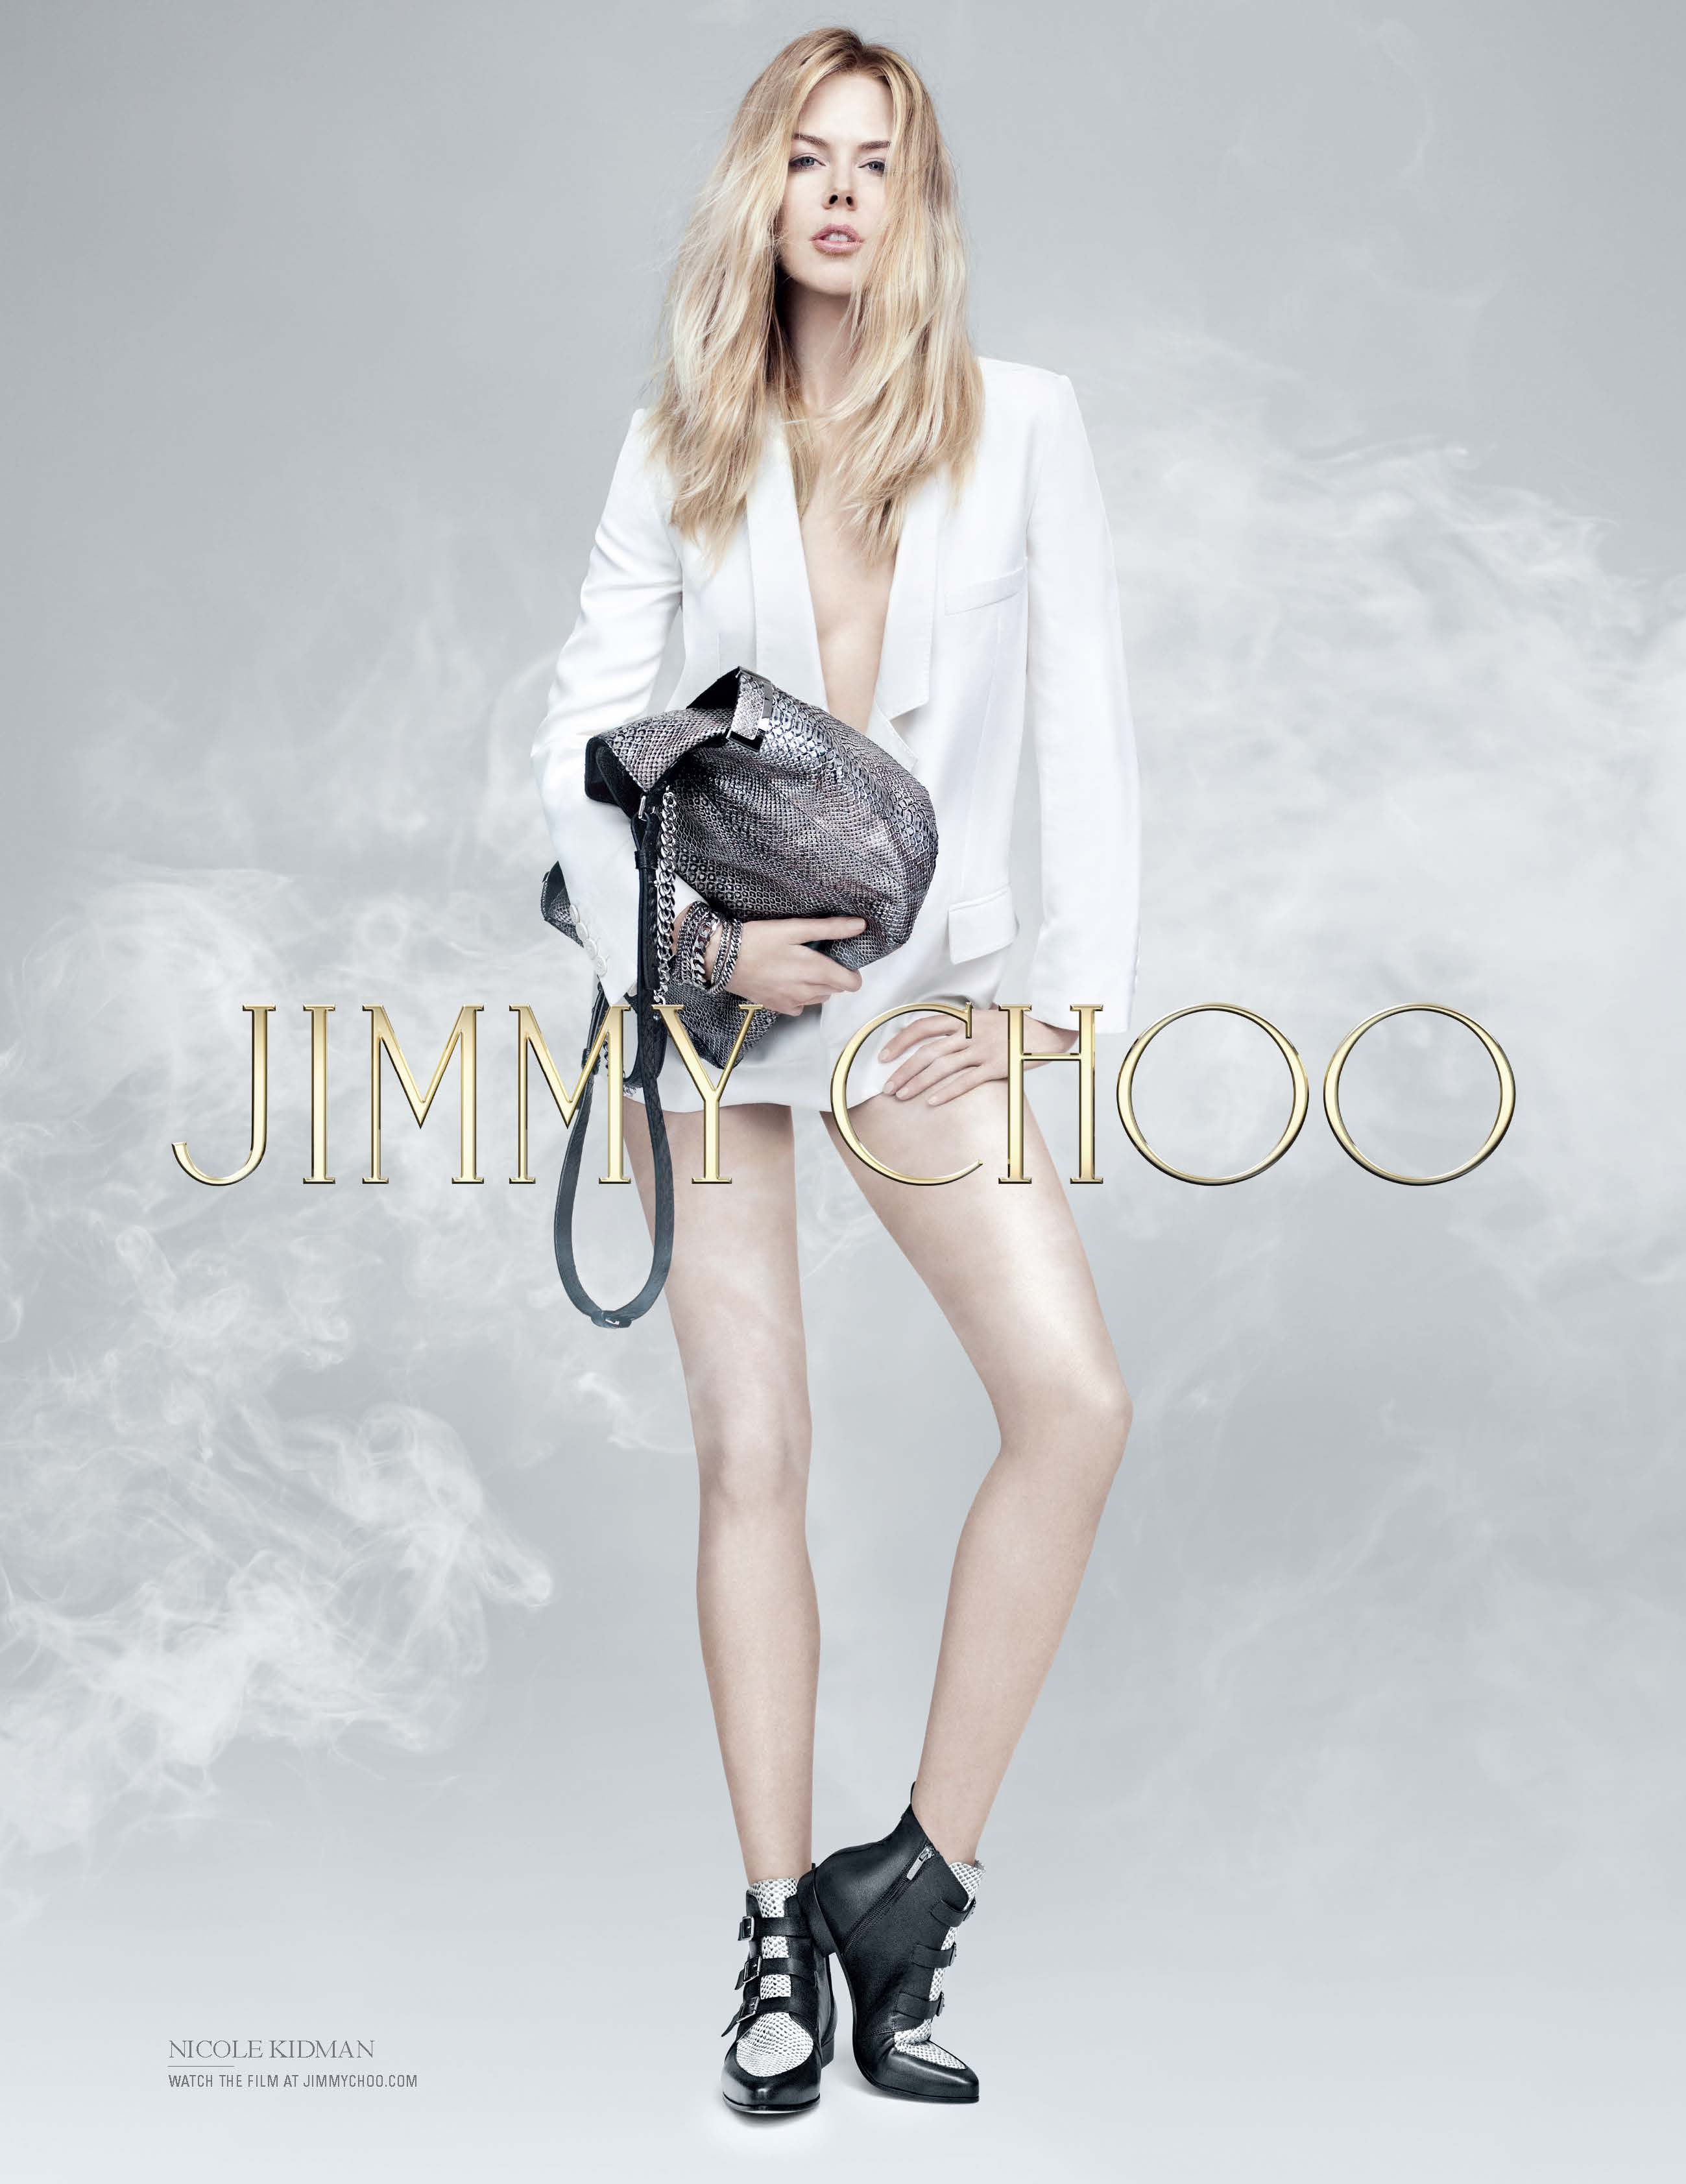 Nicole Kidman in Jimmy Choo's pre-fall 2014 campaign: Remind you of anyone?